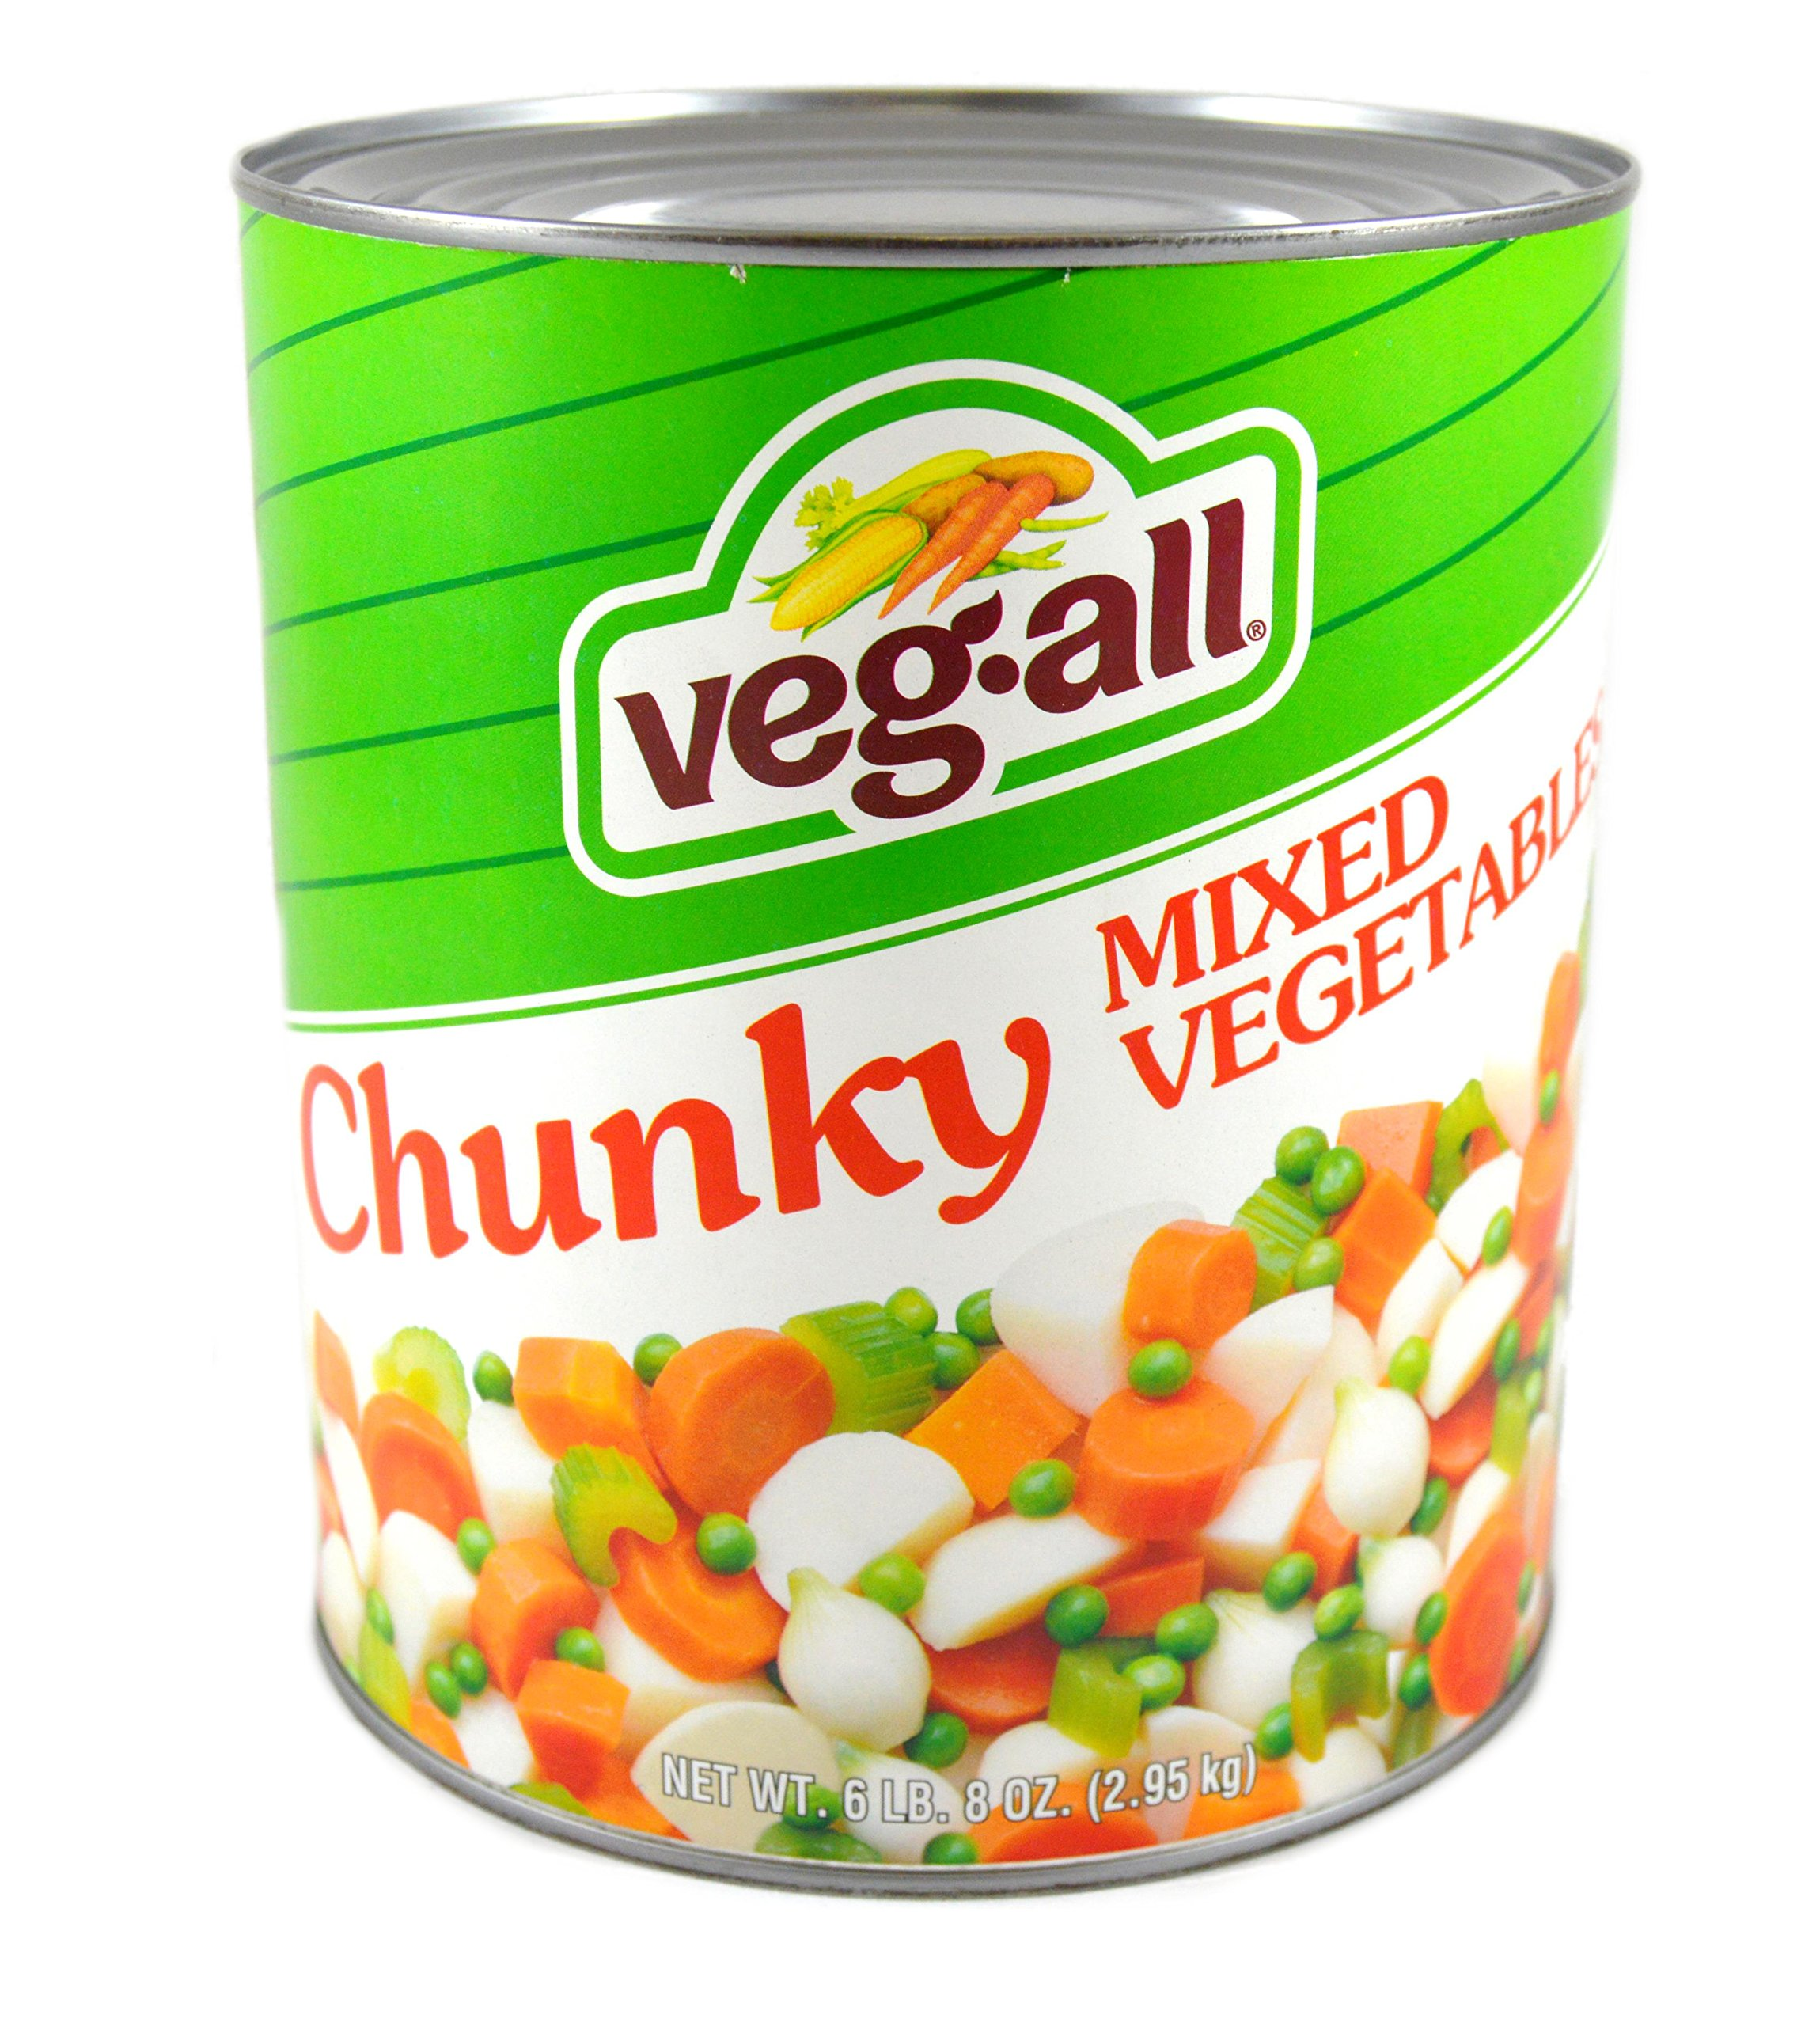 Veg-All Mixed Vegetables for Stews - no. 10 can, 6 cans per case